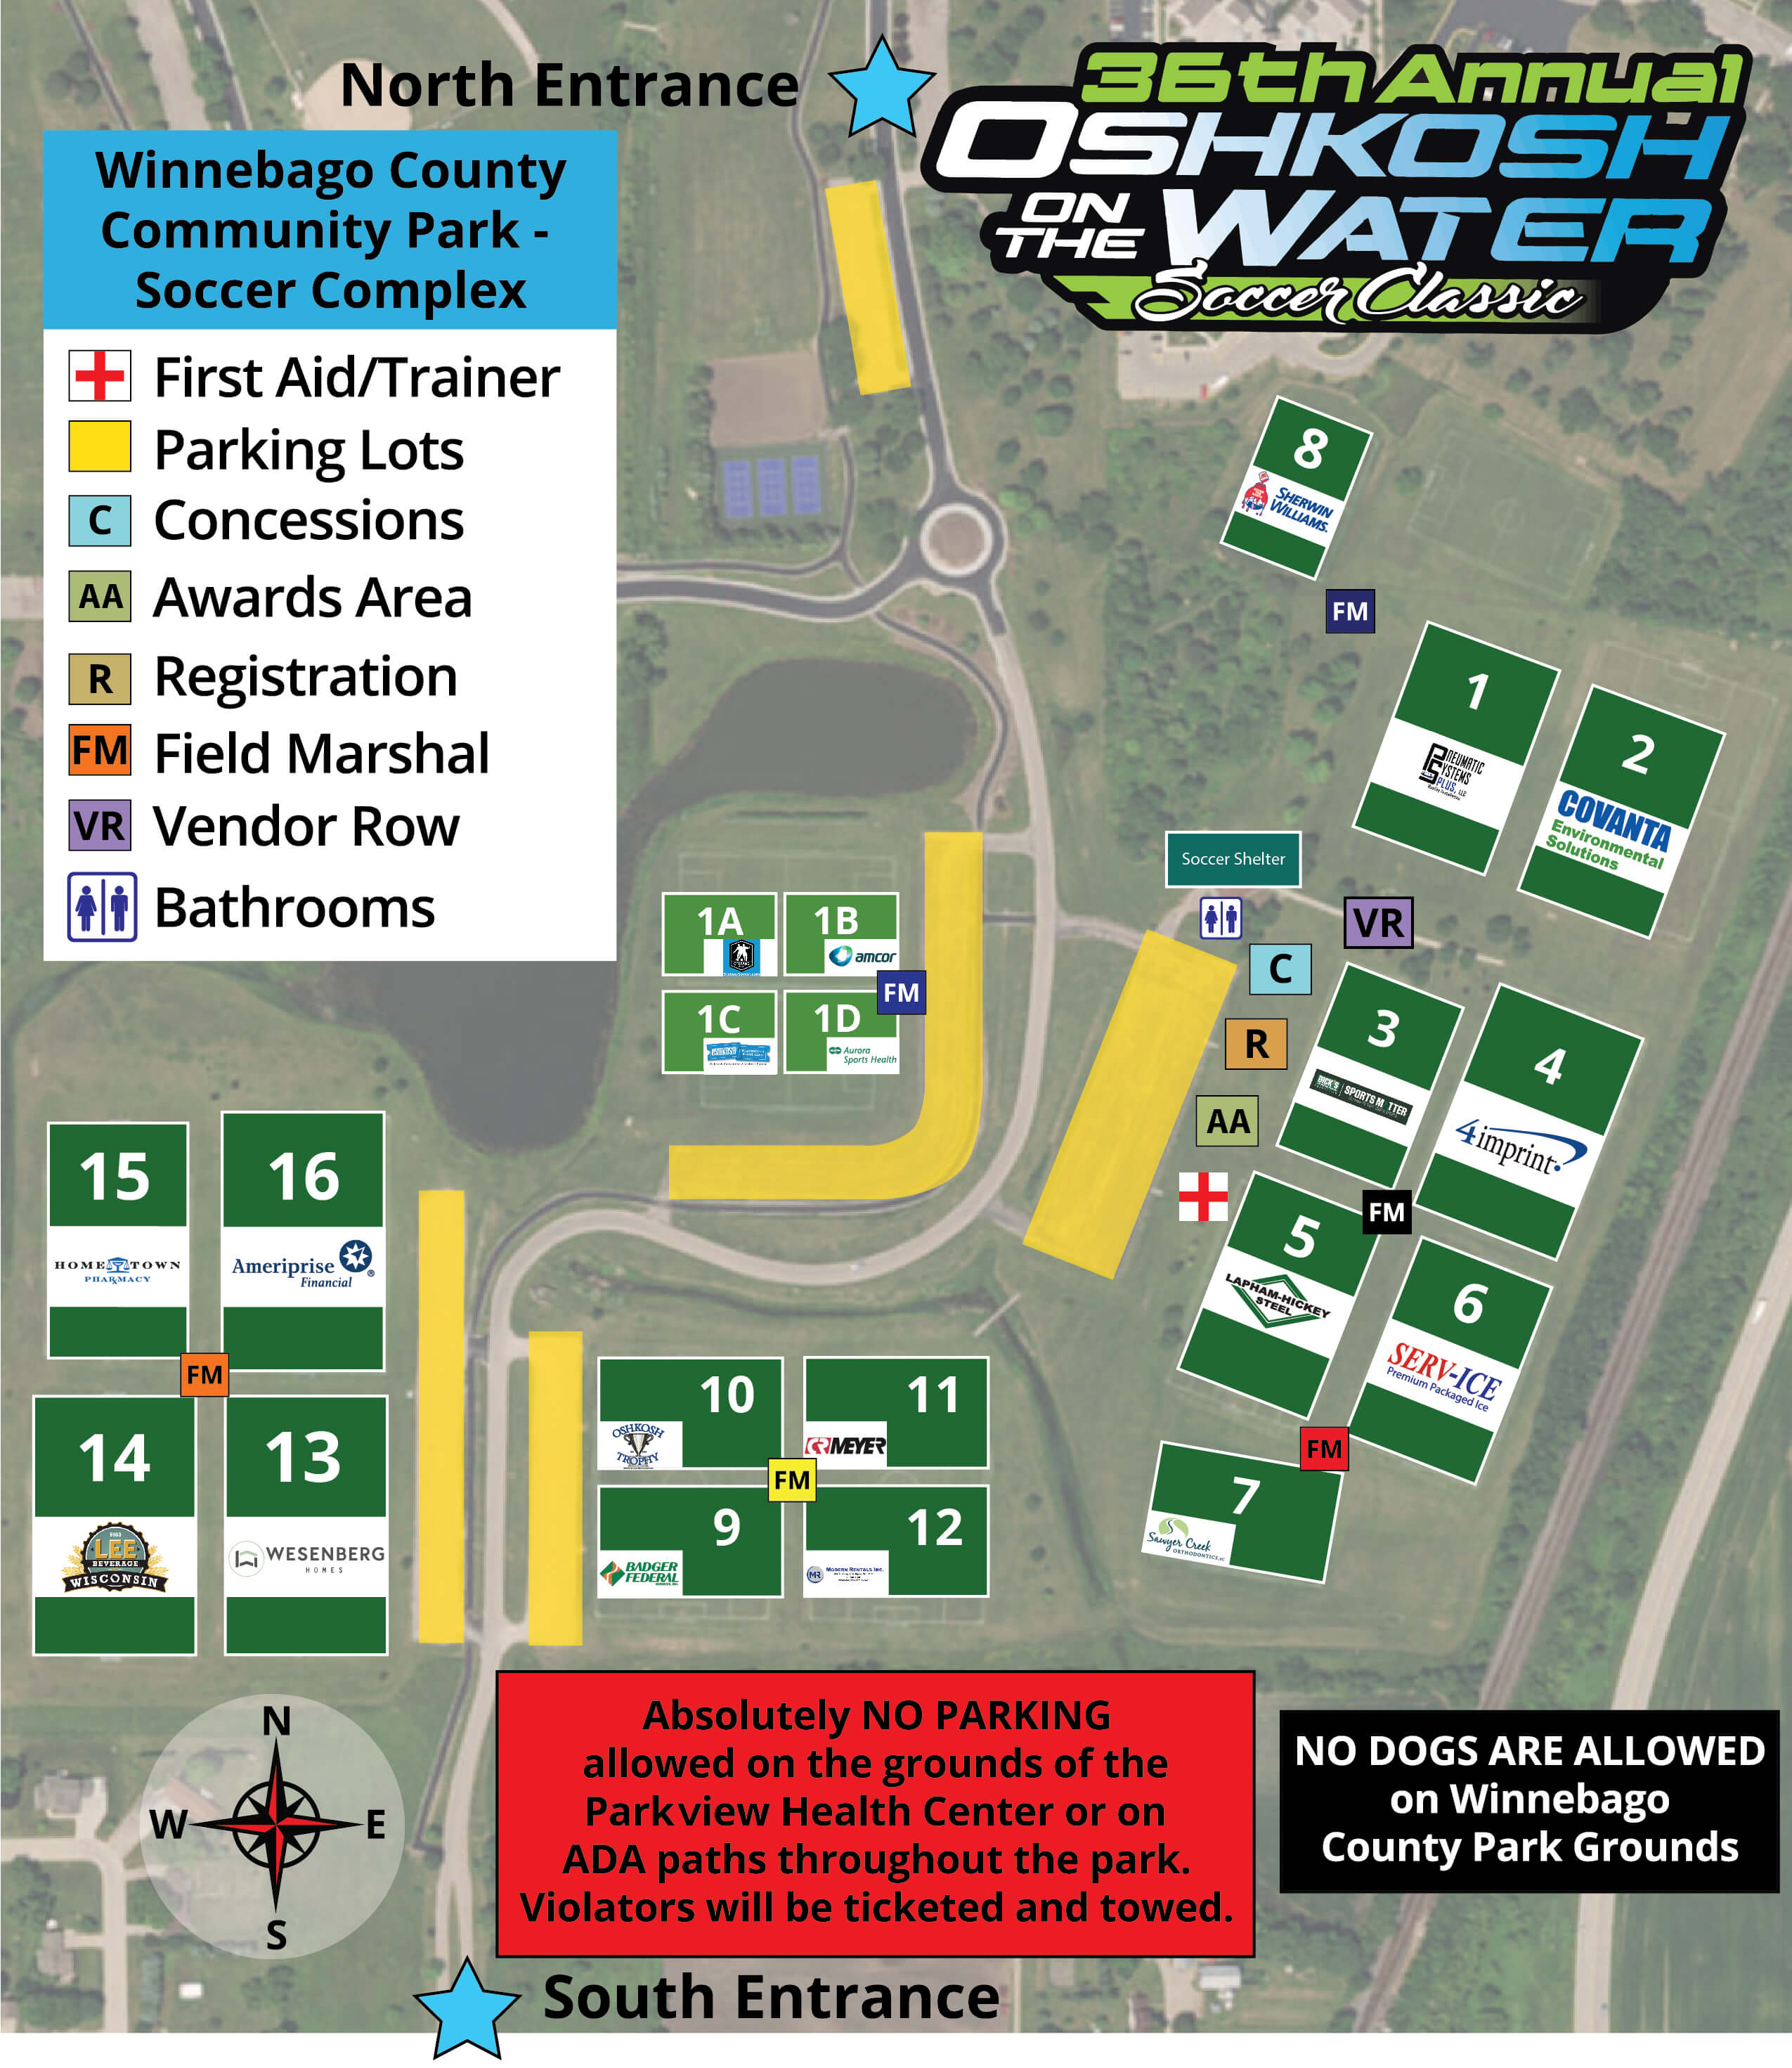 Oshkosh On The Water - County Park Map